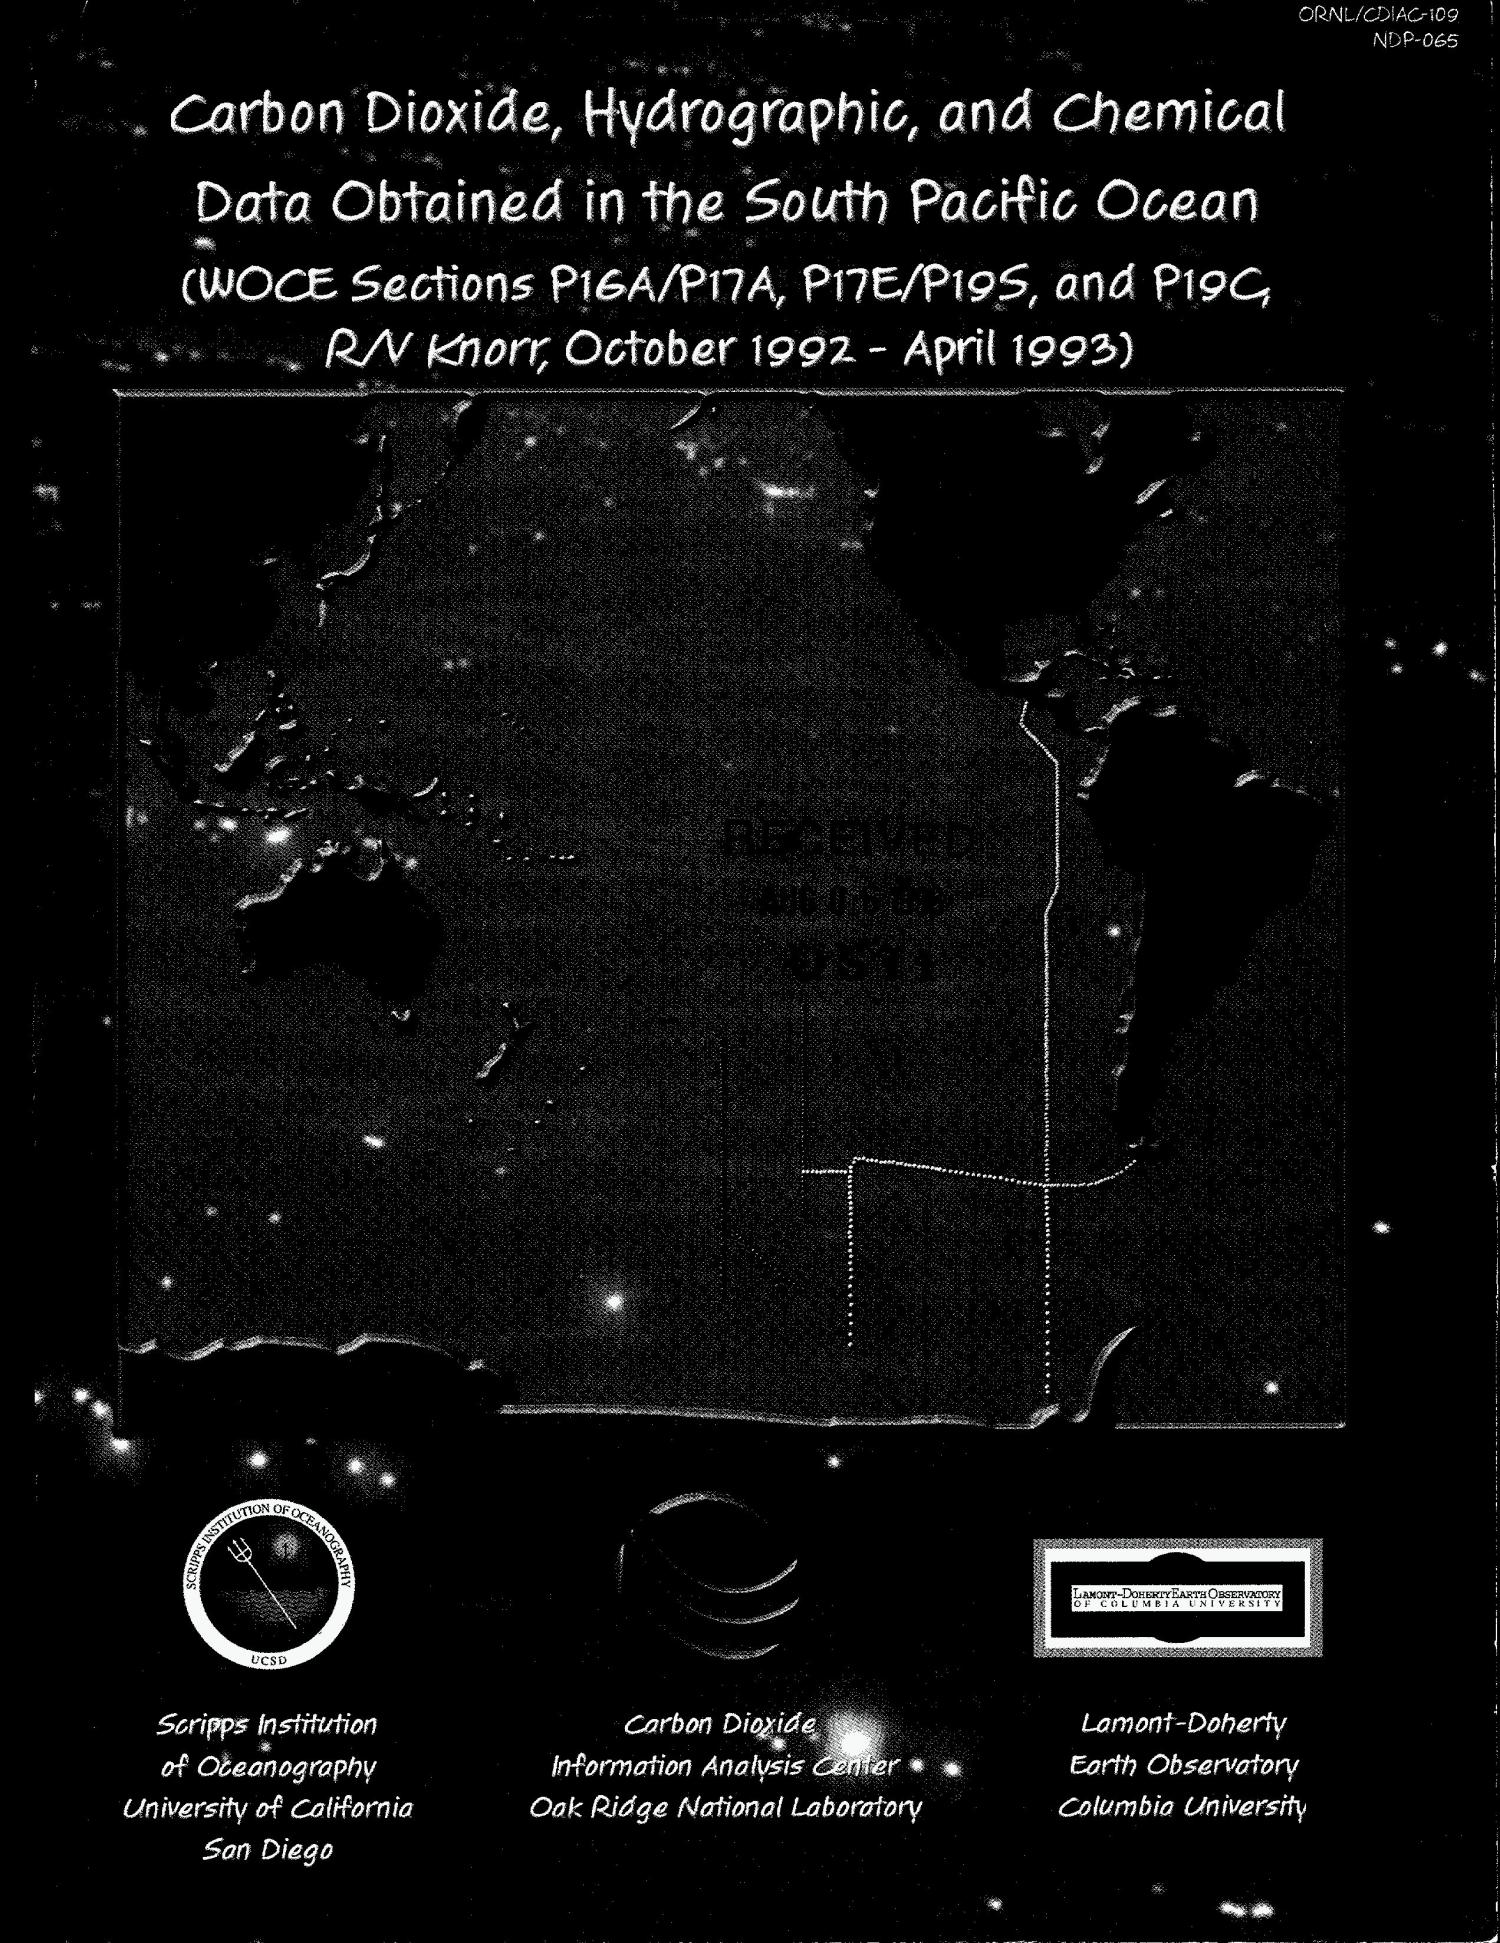 Carbon dioxide, hydrographic, and chemical data obtained in the South Pacific Ocean (WOCE Sections P16A/P17A, P17E/P19S, and P19C, R/V Knorr, October 1992--April 1993)                                                                                                      [Sequence #]: 1 of 191